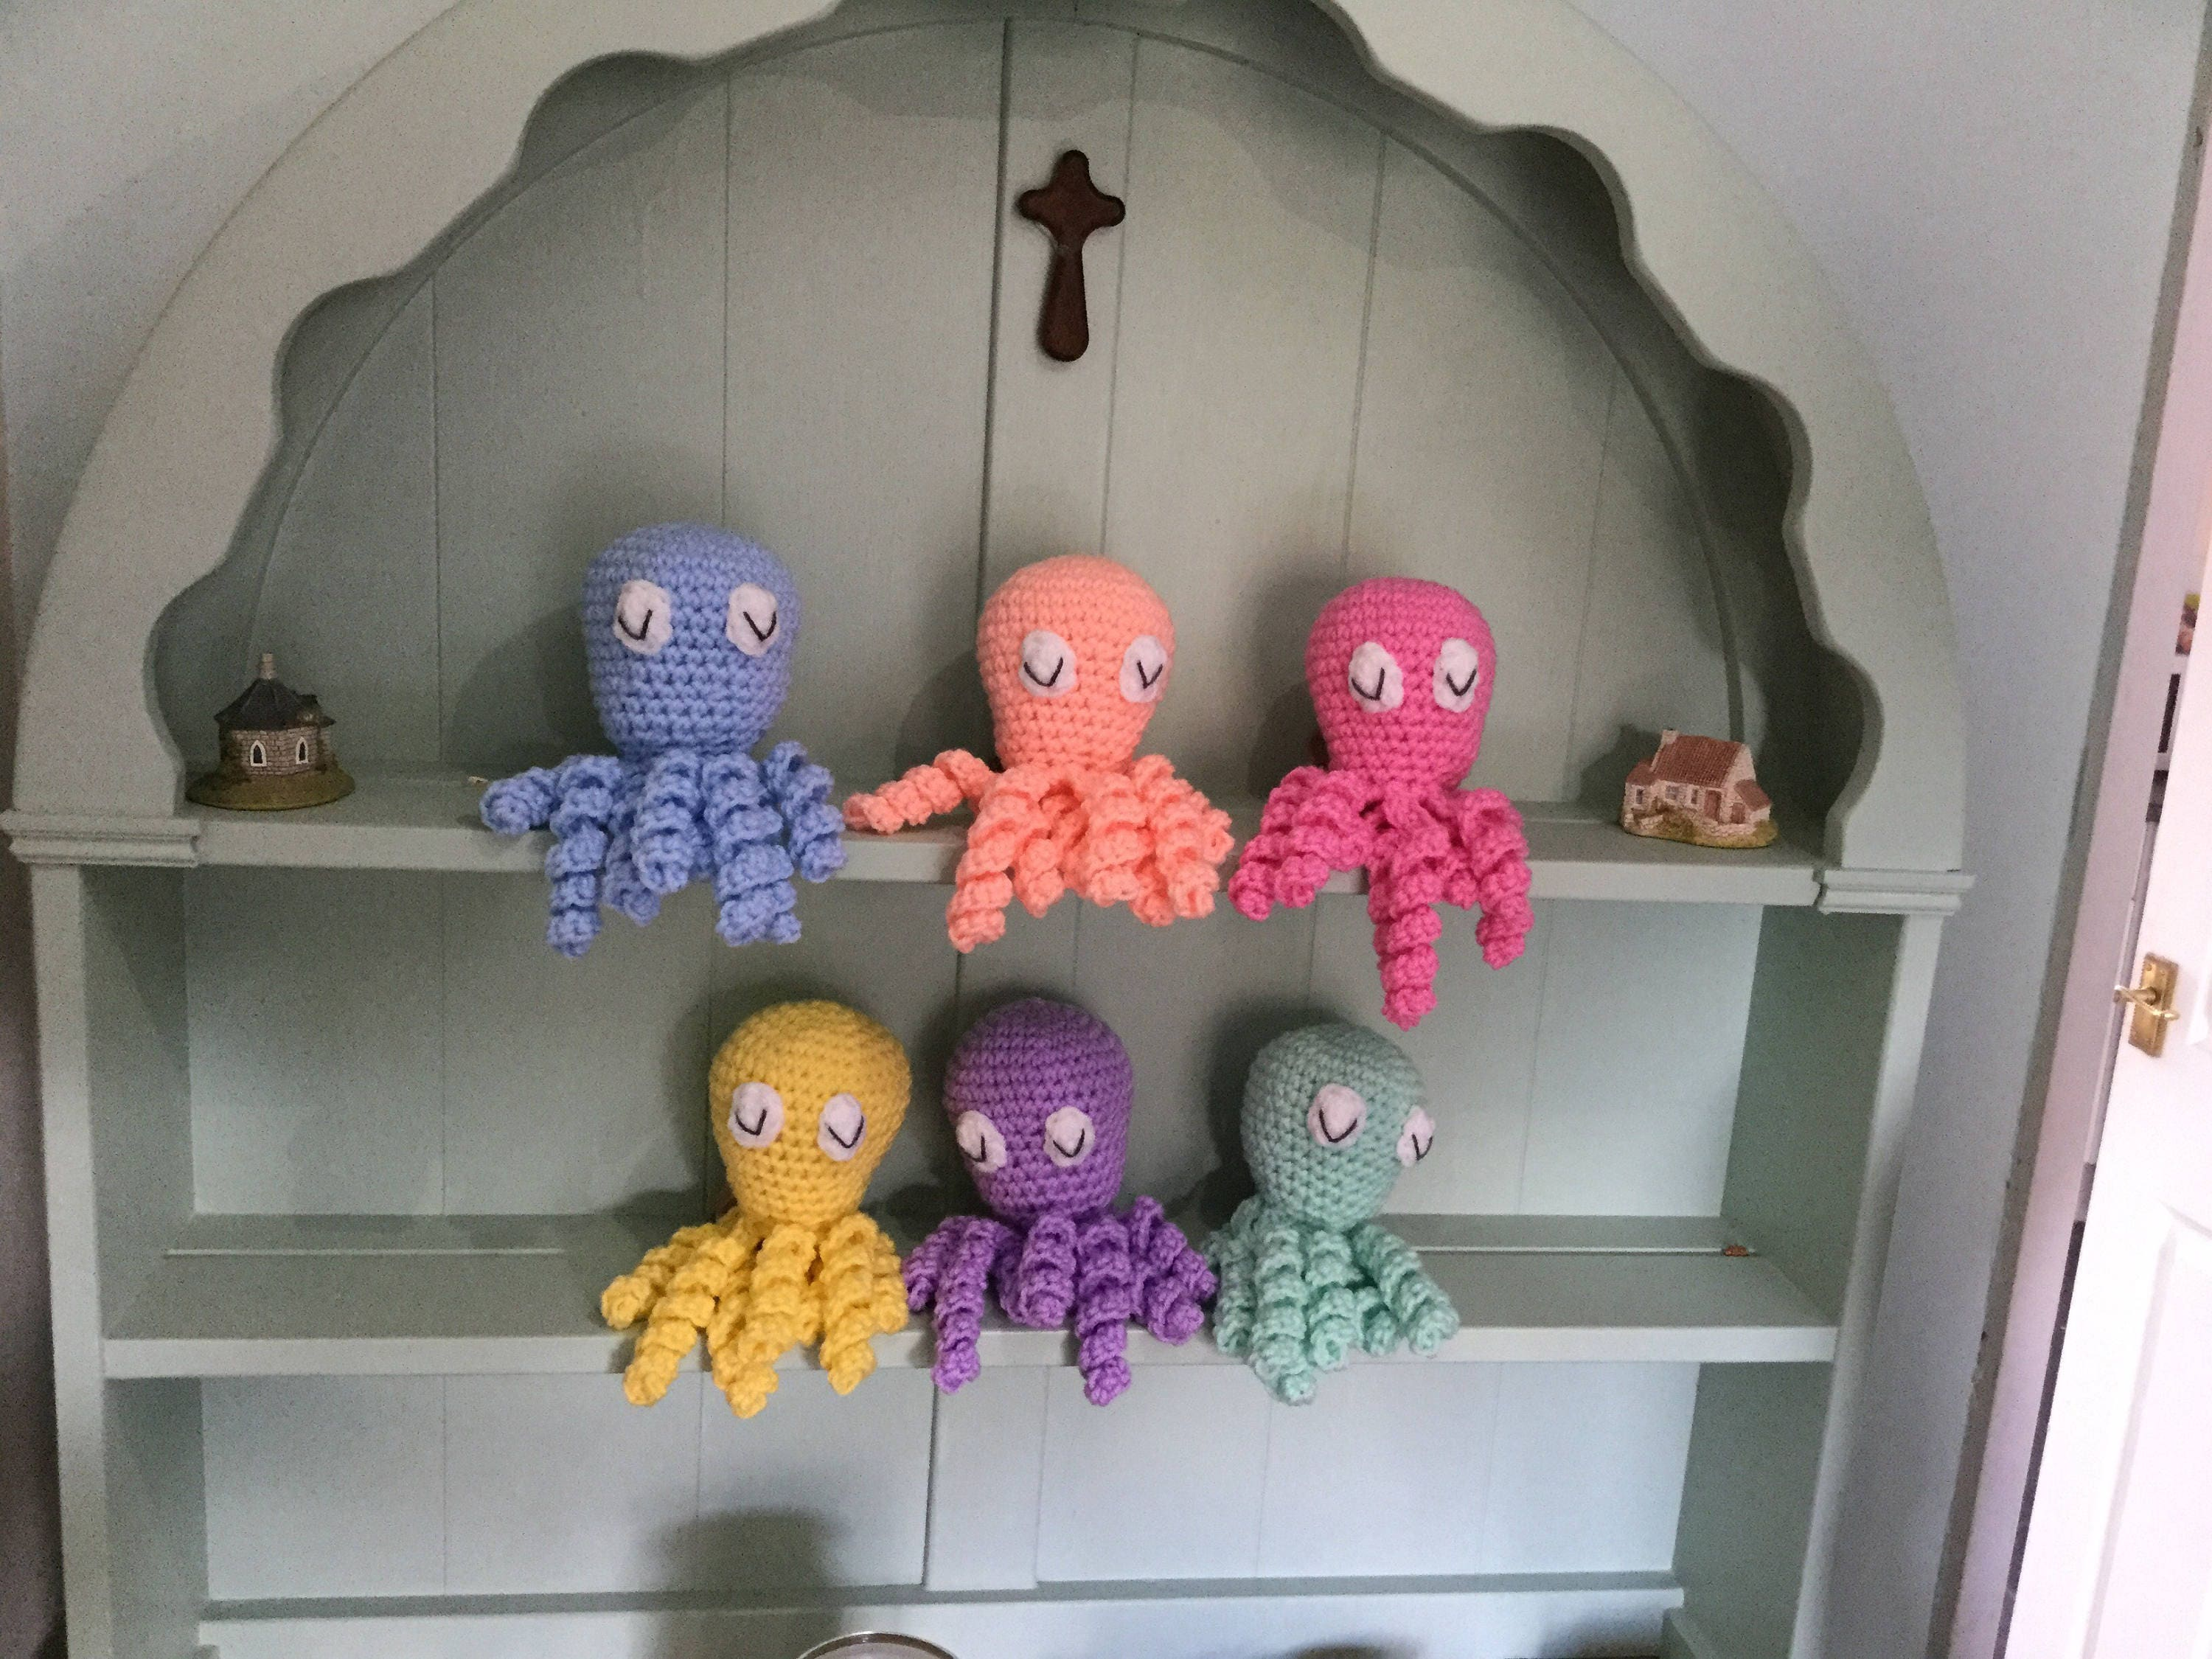 Octopus shower curtain etsy - Preemie Premature Baby Octopus Toy With Comfort Tentacles Prem Baby Comfort Toy Handmade Crochet Toy Octopus Knitted Octopus